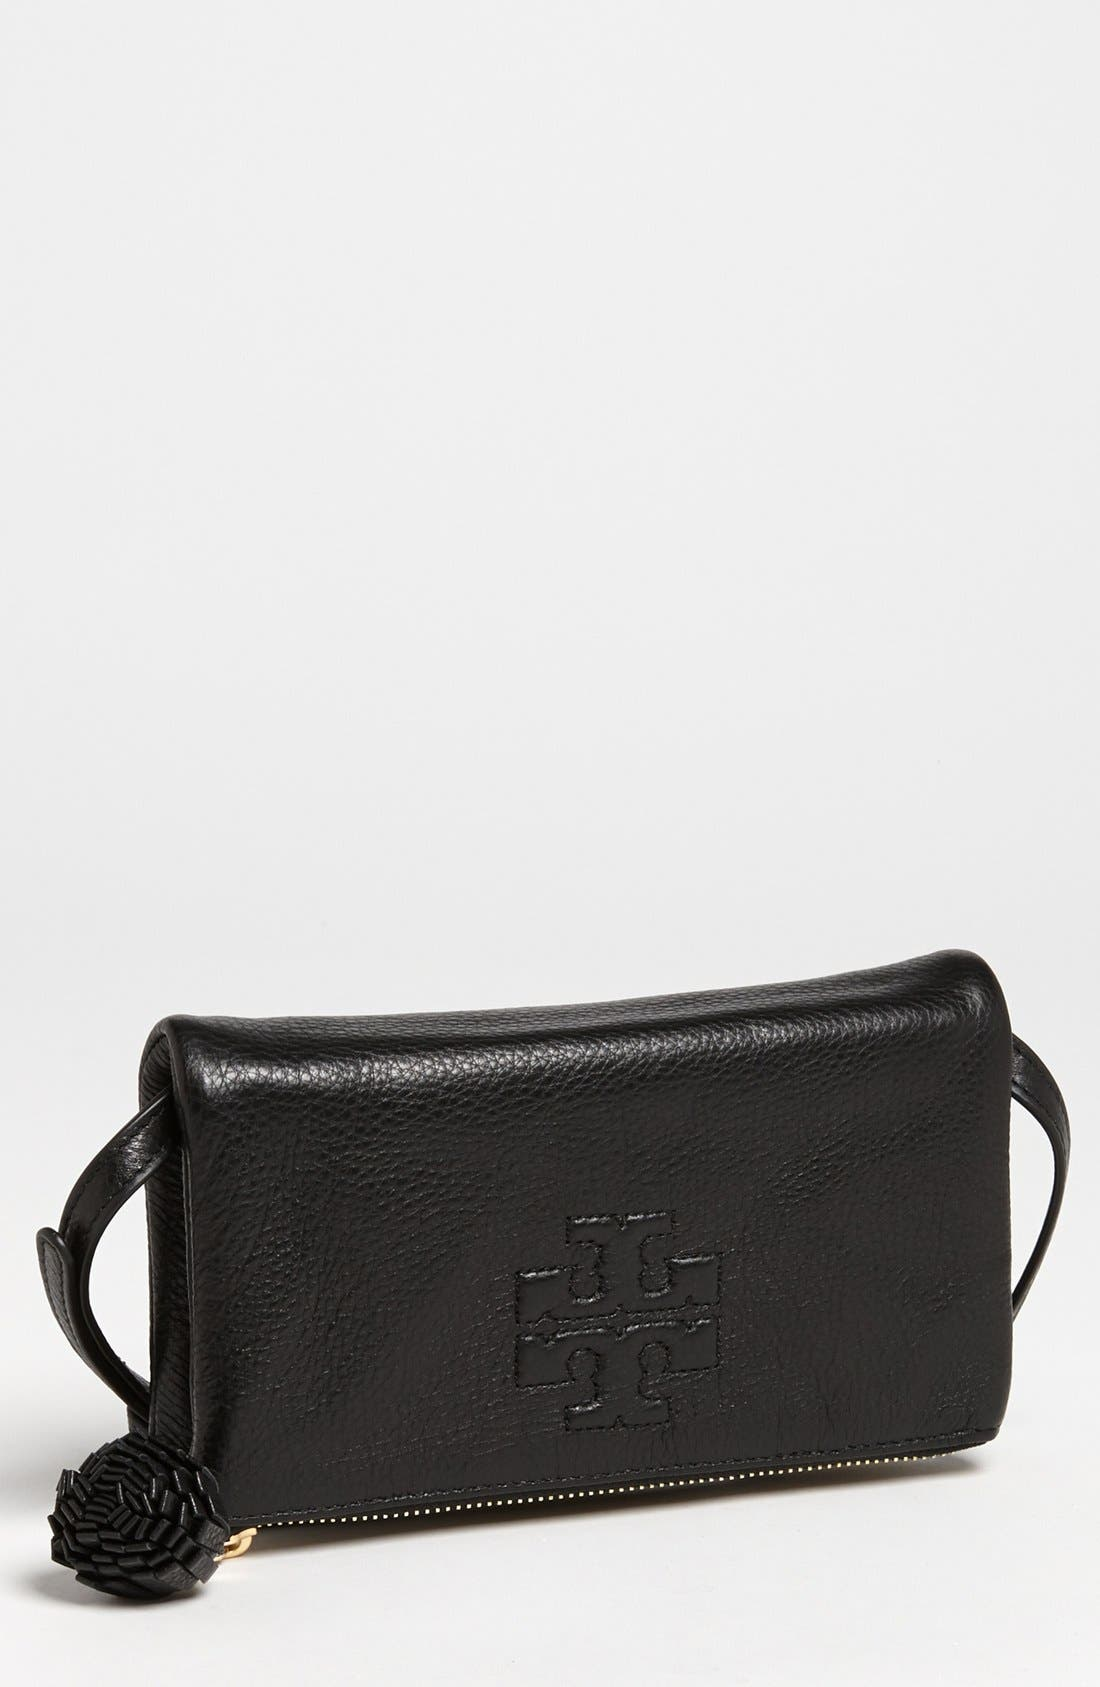 Alternate Image 1 Selected - Tory Burch 'Thea' Foldover Crossbody Bag